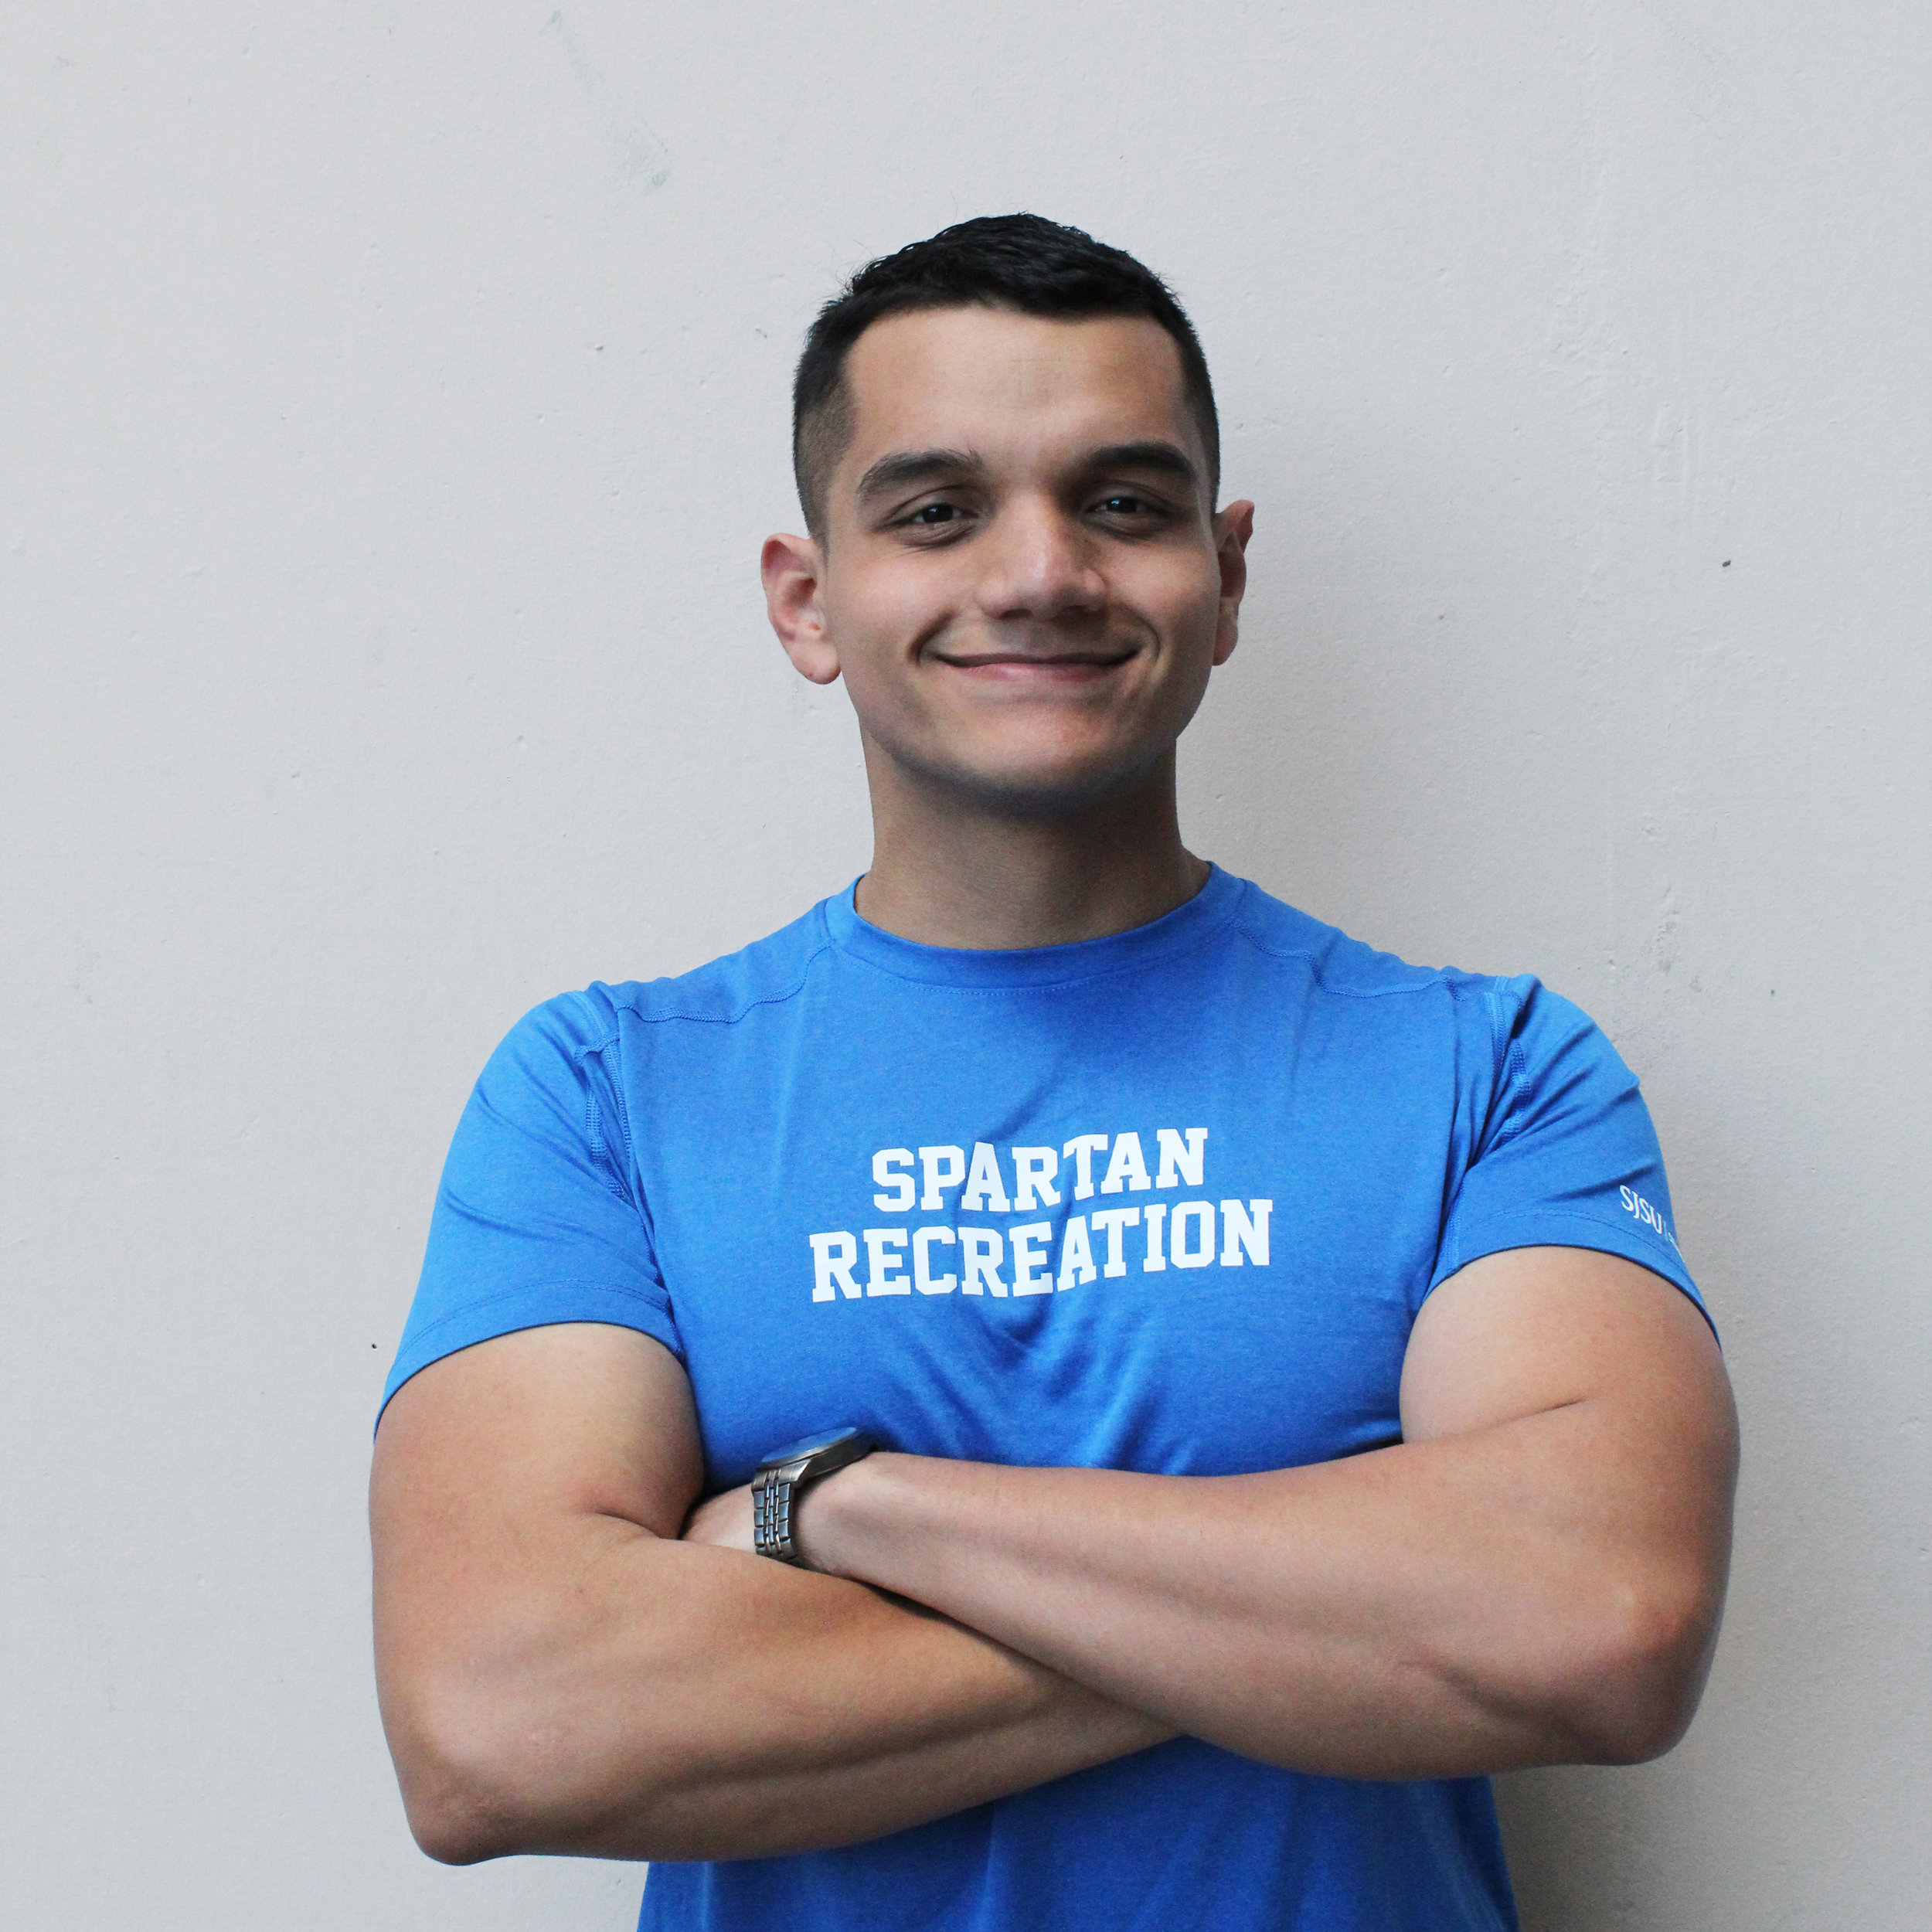 Gus - certifications: ACE Certified Personal TrainerMajor: Kinesiology with an emphasis in Exercise and Fitness, and I am minoring in Nutrition for Physical Performance.it's my mission to make exercise as enjoyable for you as it is for me! I enjoy distance running, yoga, and bodybuilding.